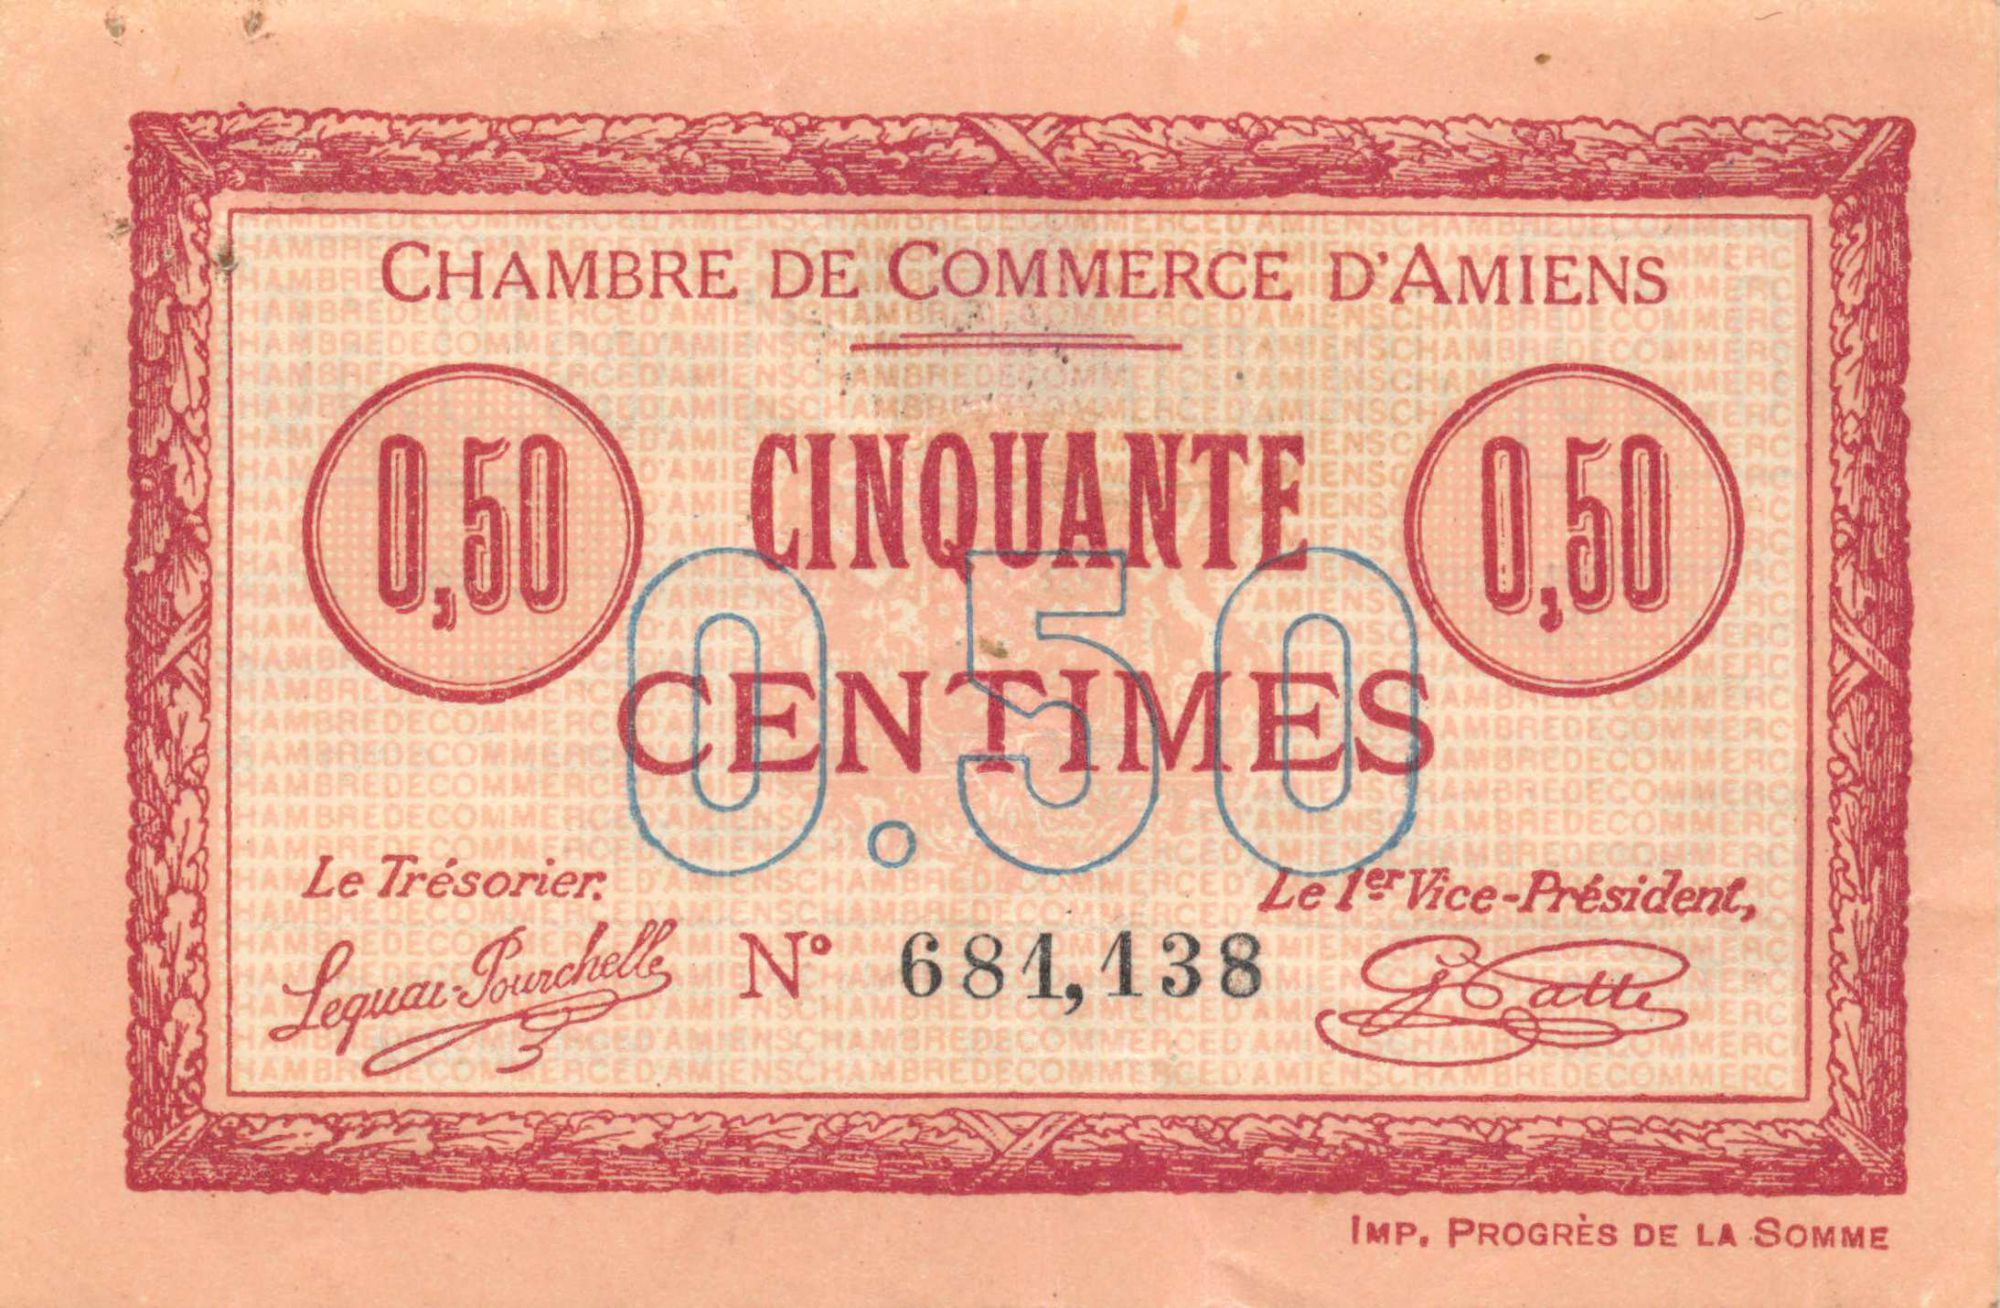 France 50 Centimes - Amiens Chamber of Commerce 1915 - XF